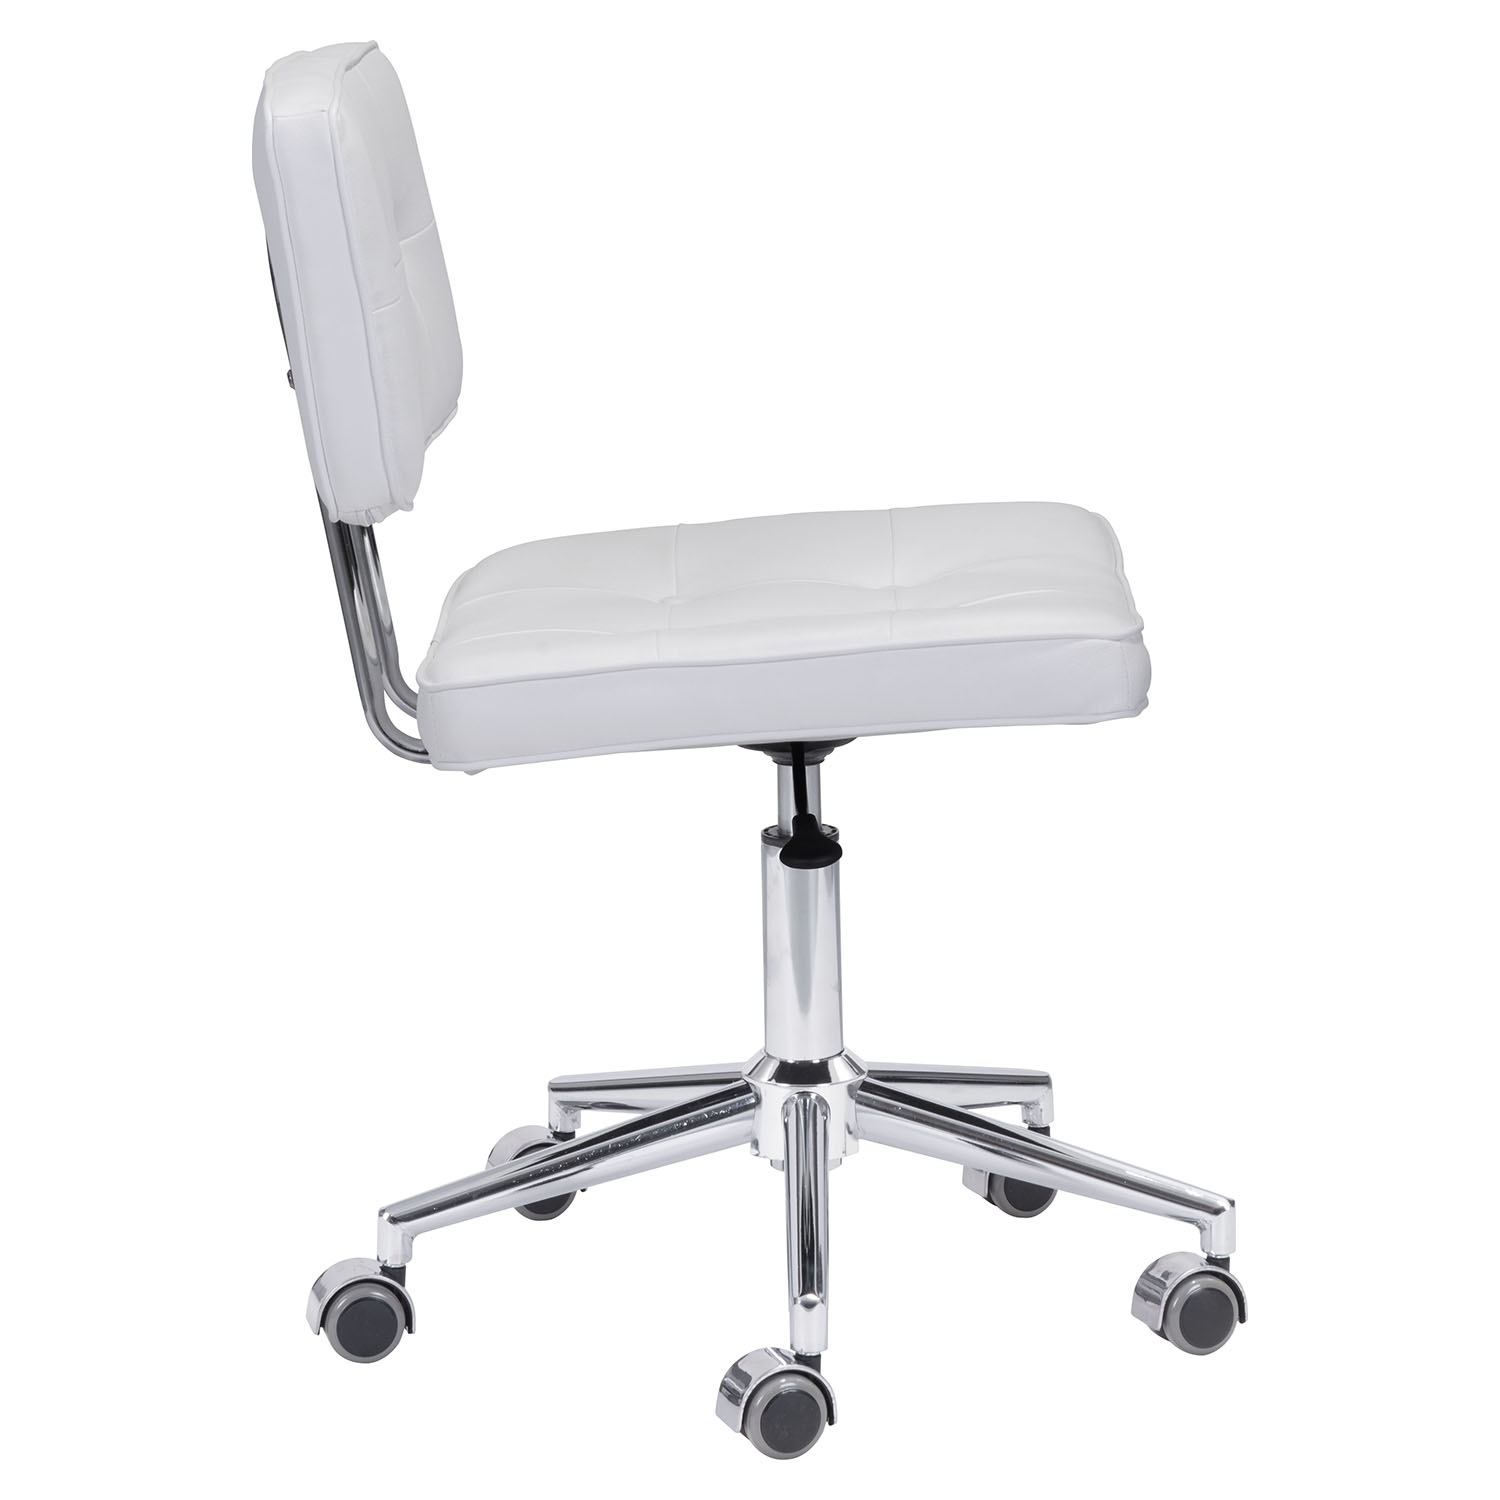 Series Tufted Office Chair - White - ZM-100237